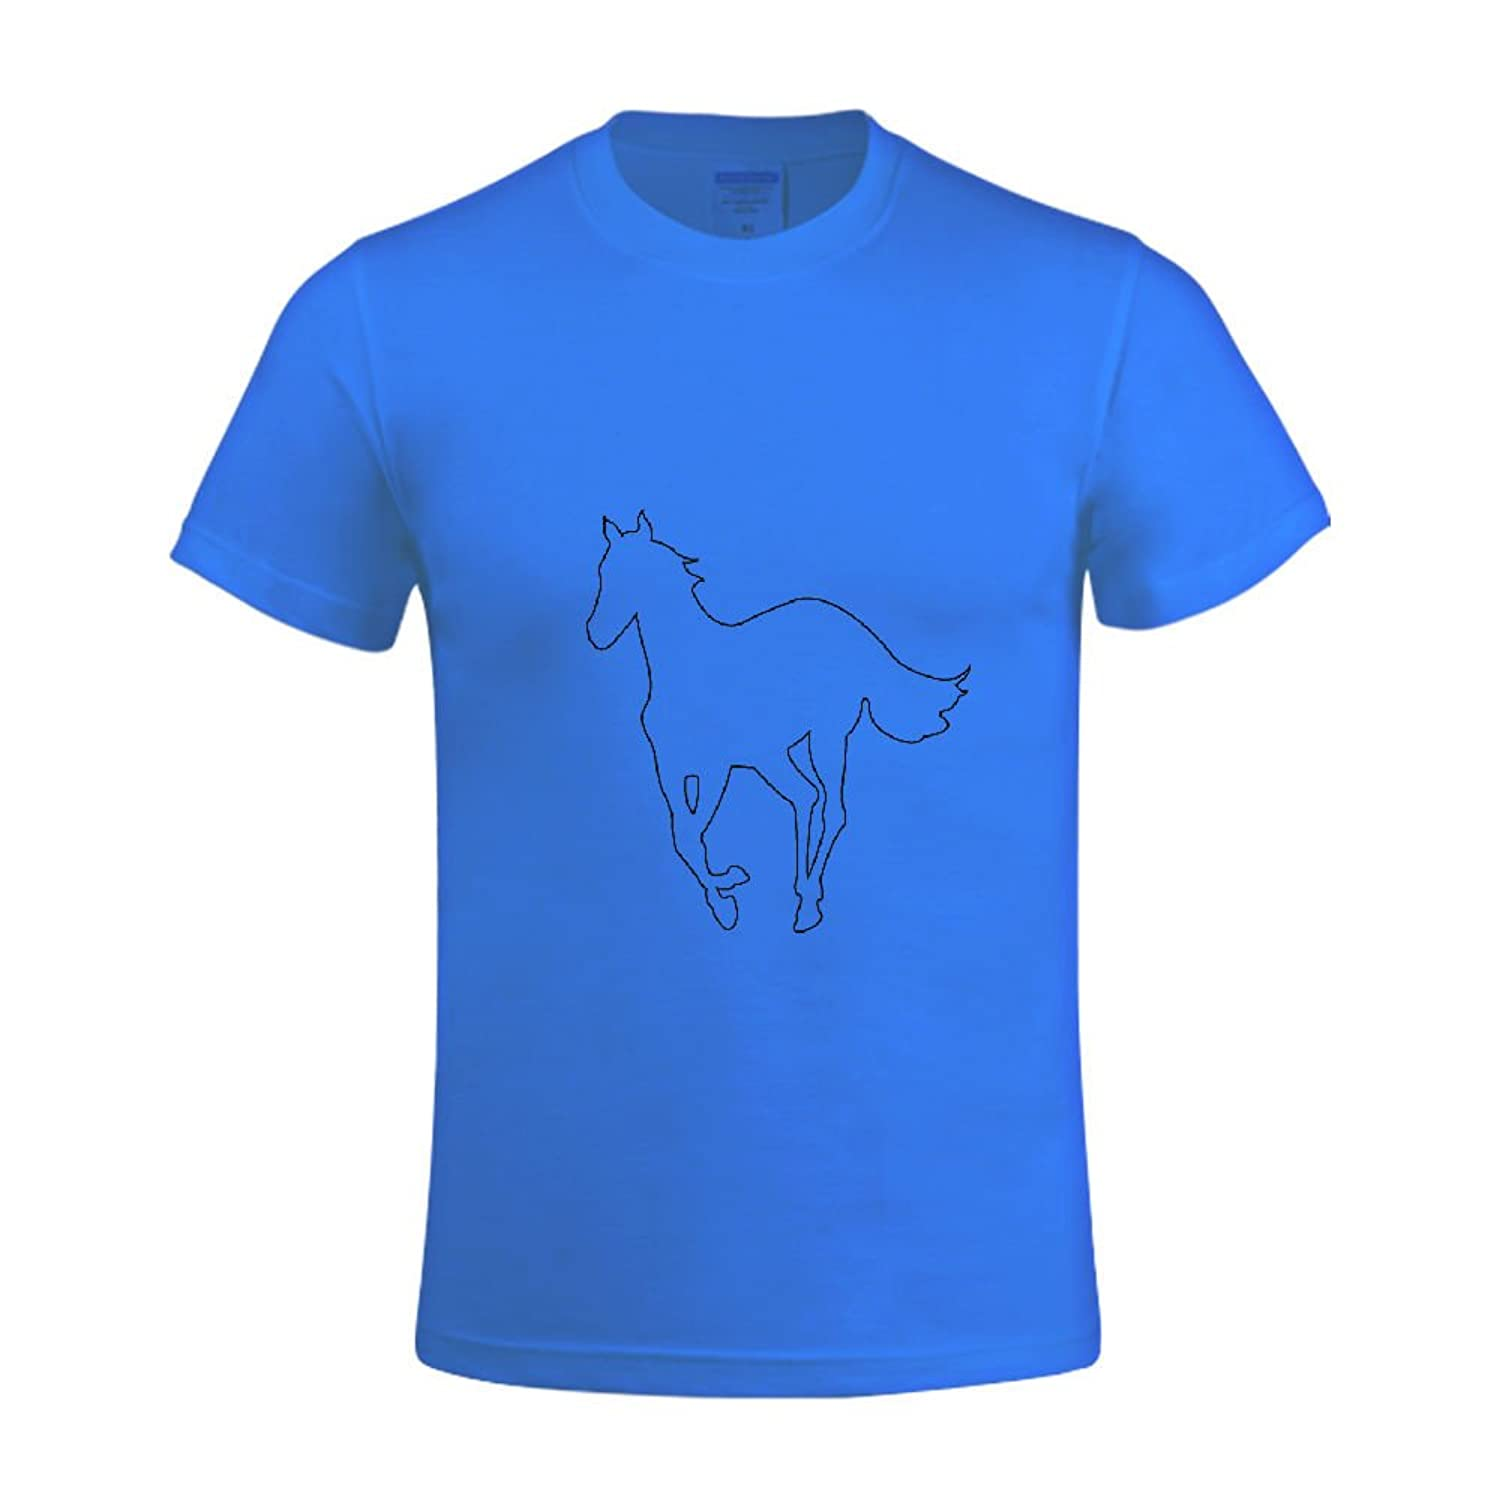 T shirt deftones white pony - 7 14 Days On Time Dilivery